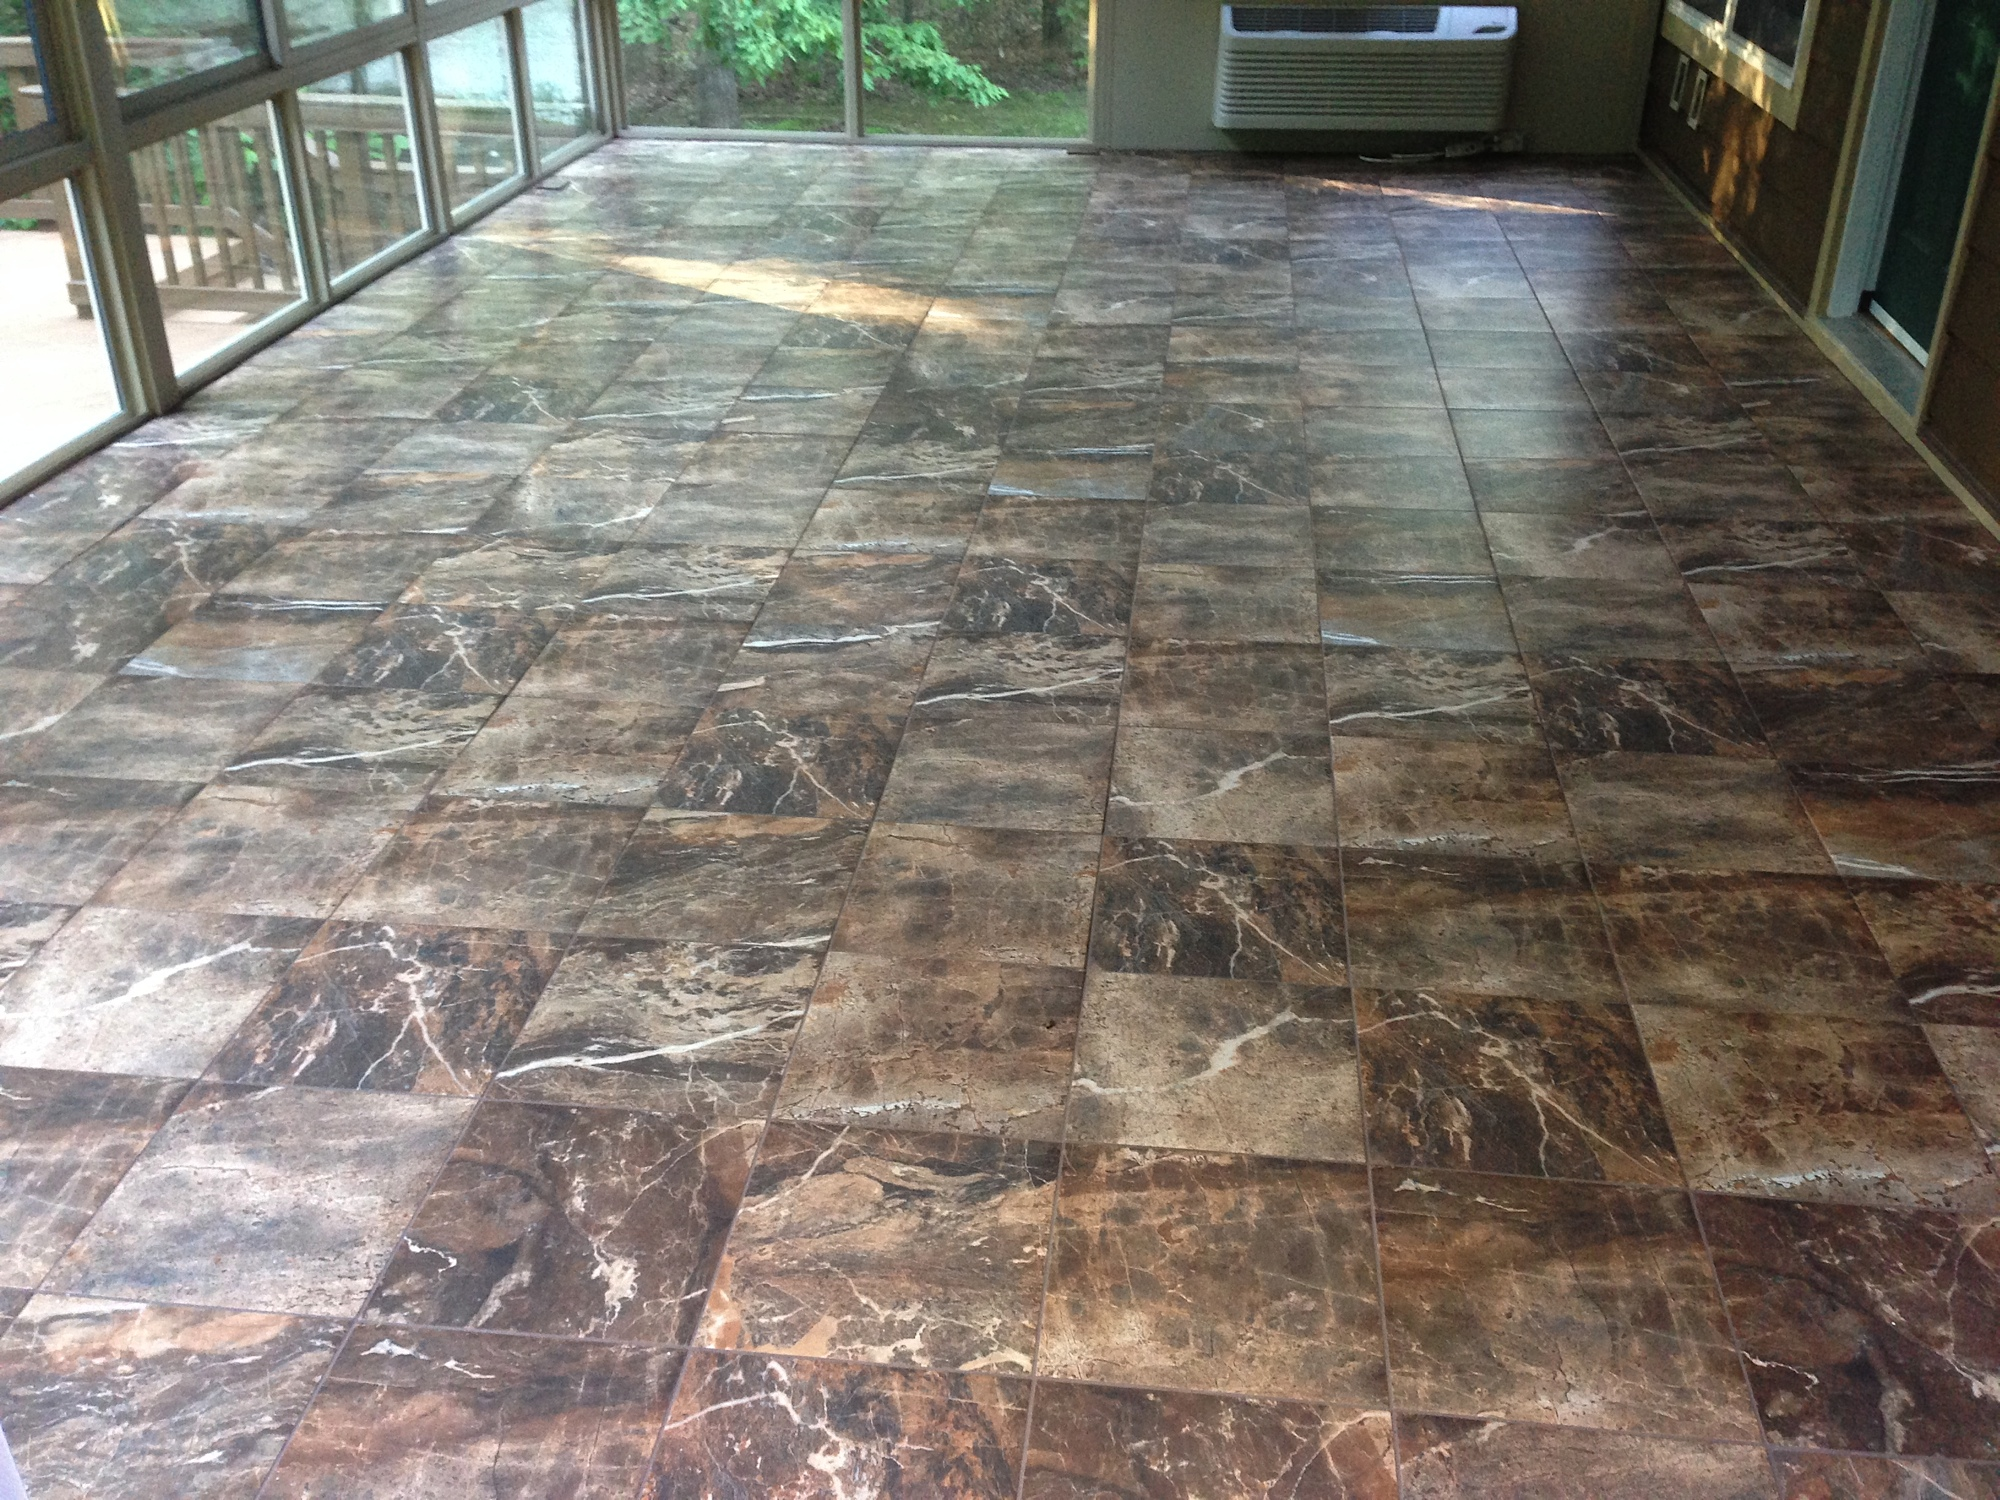 Renovation inspiration sunroom with 13x13 thrill rock warm heat heres the finished floor the tiles shown here is the 13x13 thrill collection in the color rock the grout is laticrete permacolor chocolate truffle not dailygadgetfo Choice Image